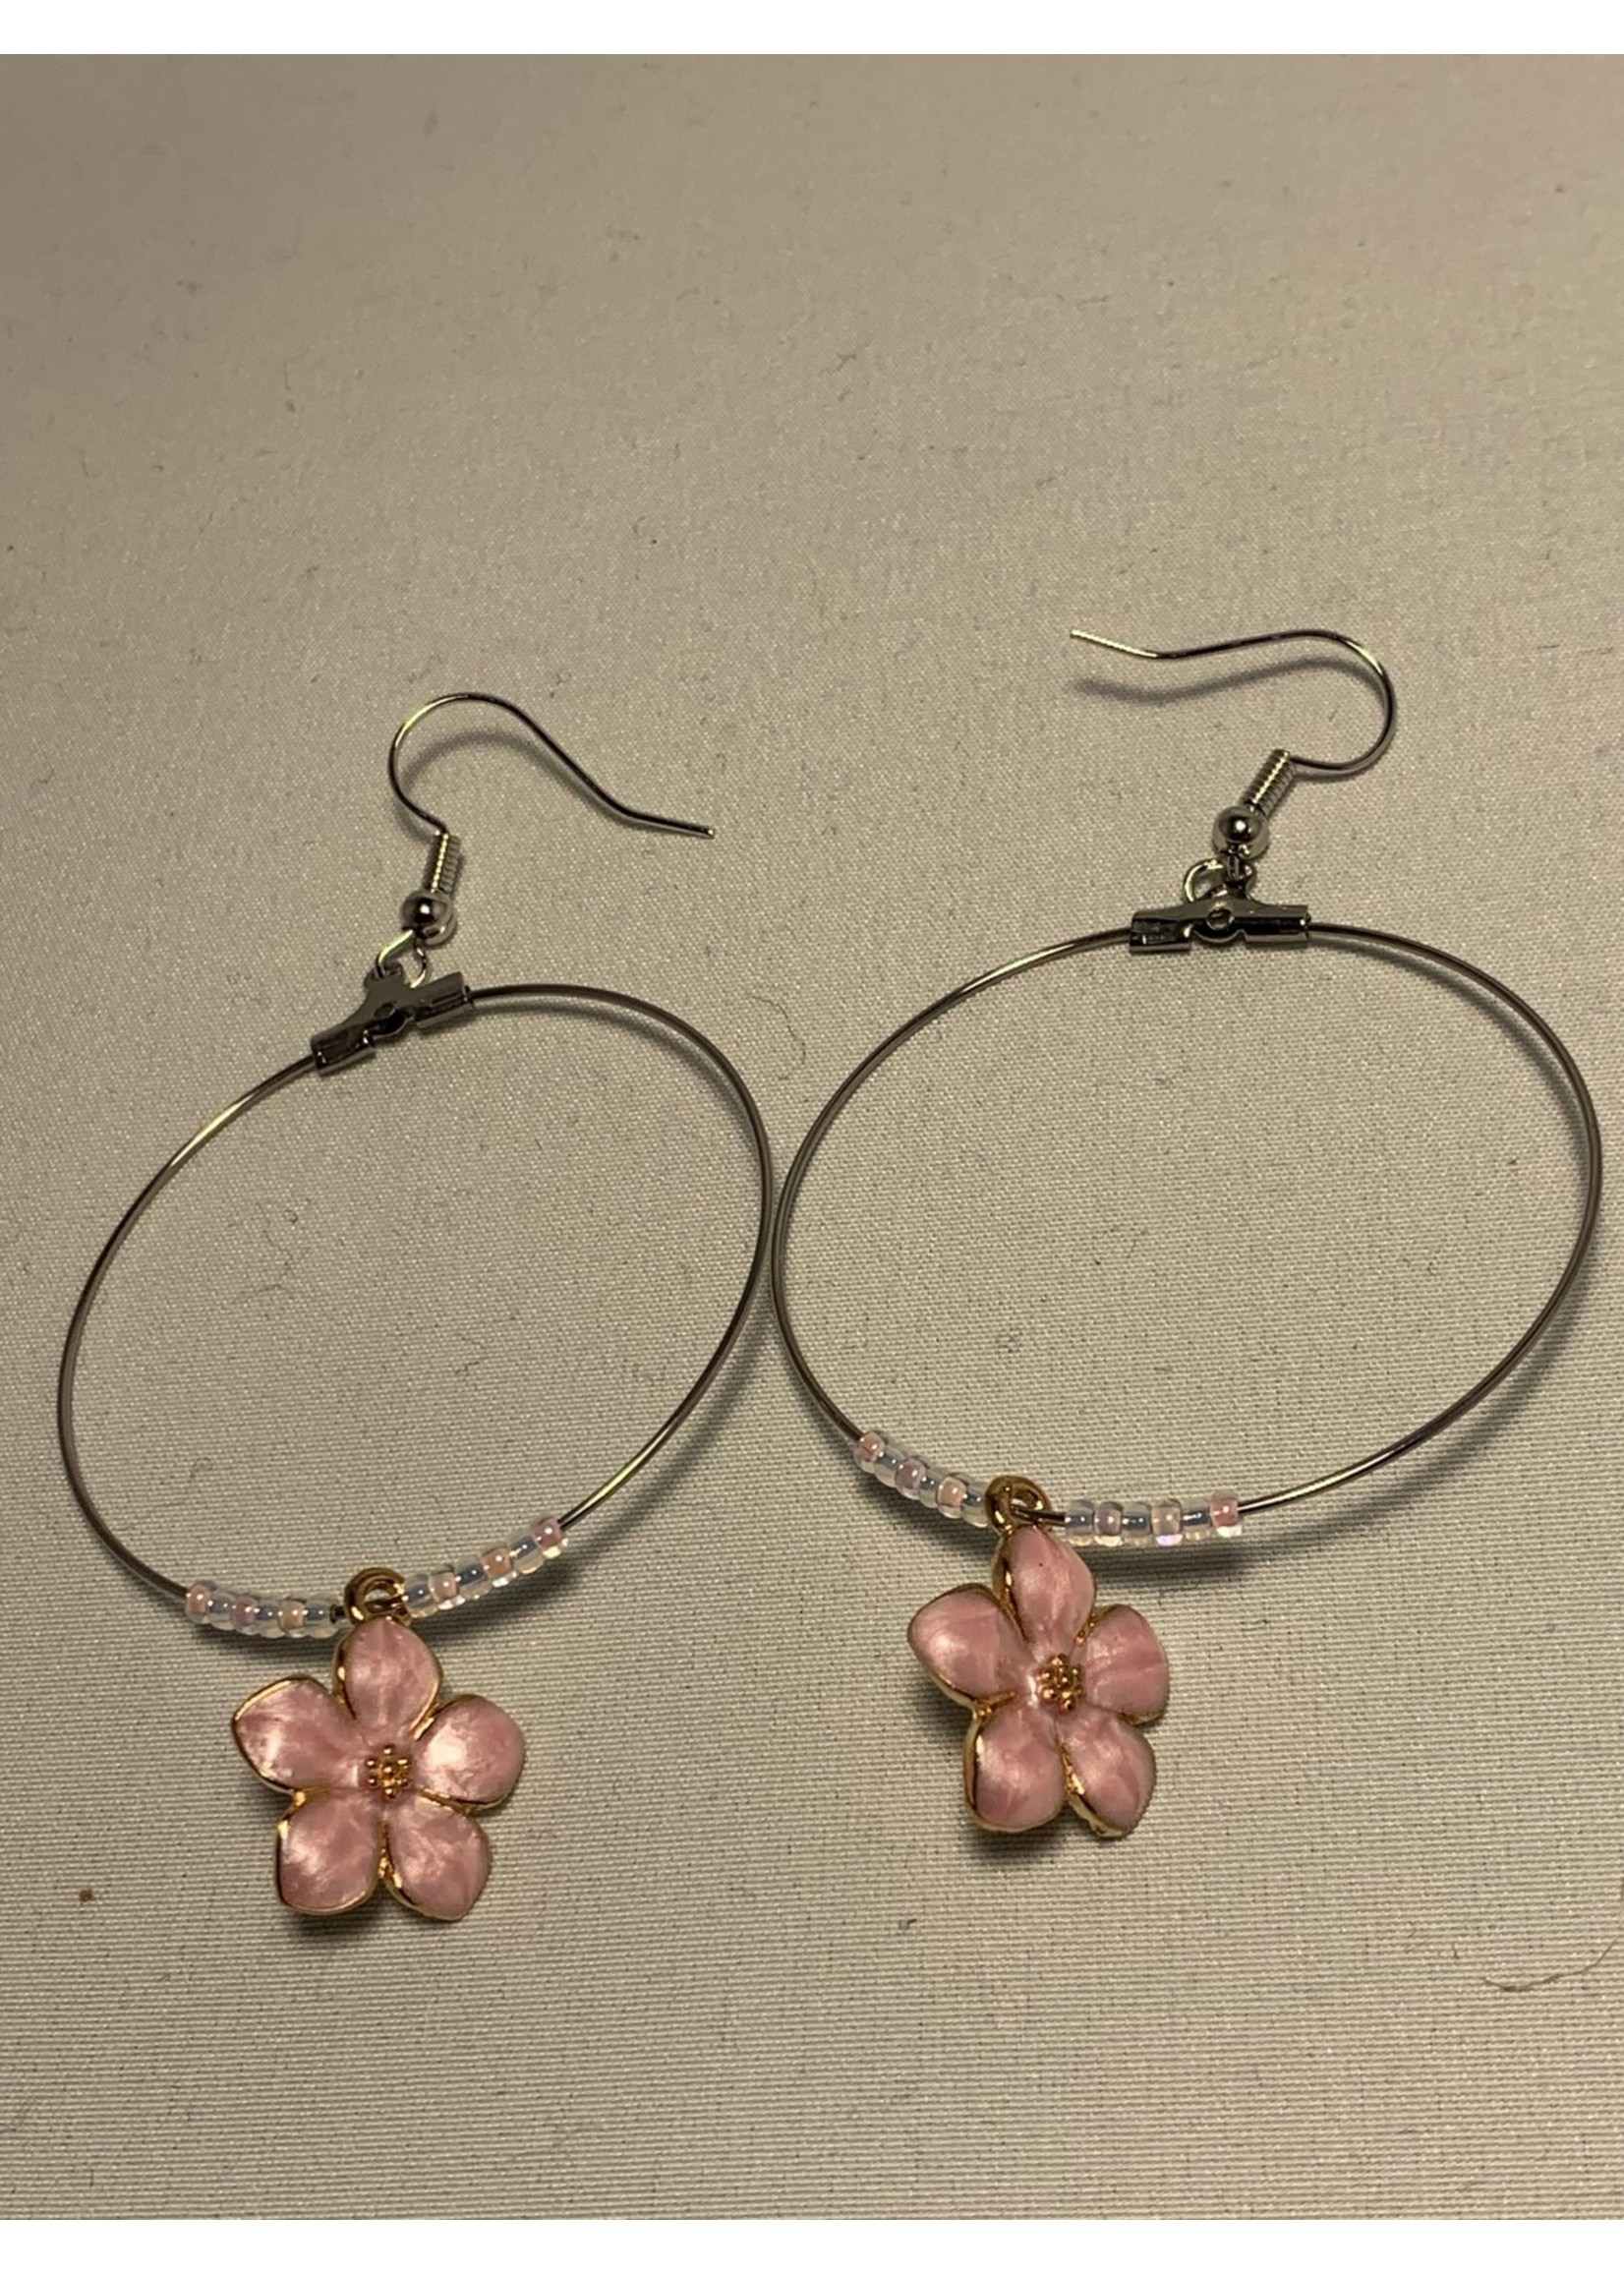 Large Hoop Earrings Pearl Pink Flowers with Pearl Pink and Gold Lined Pearl Beads